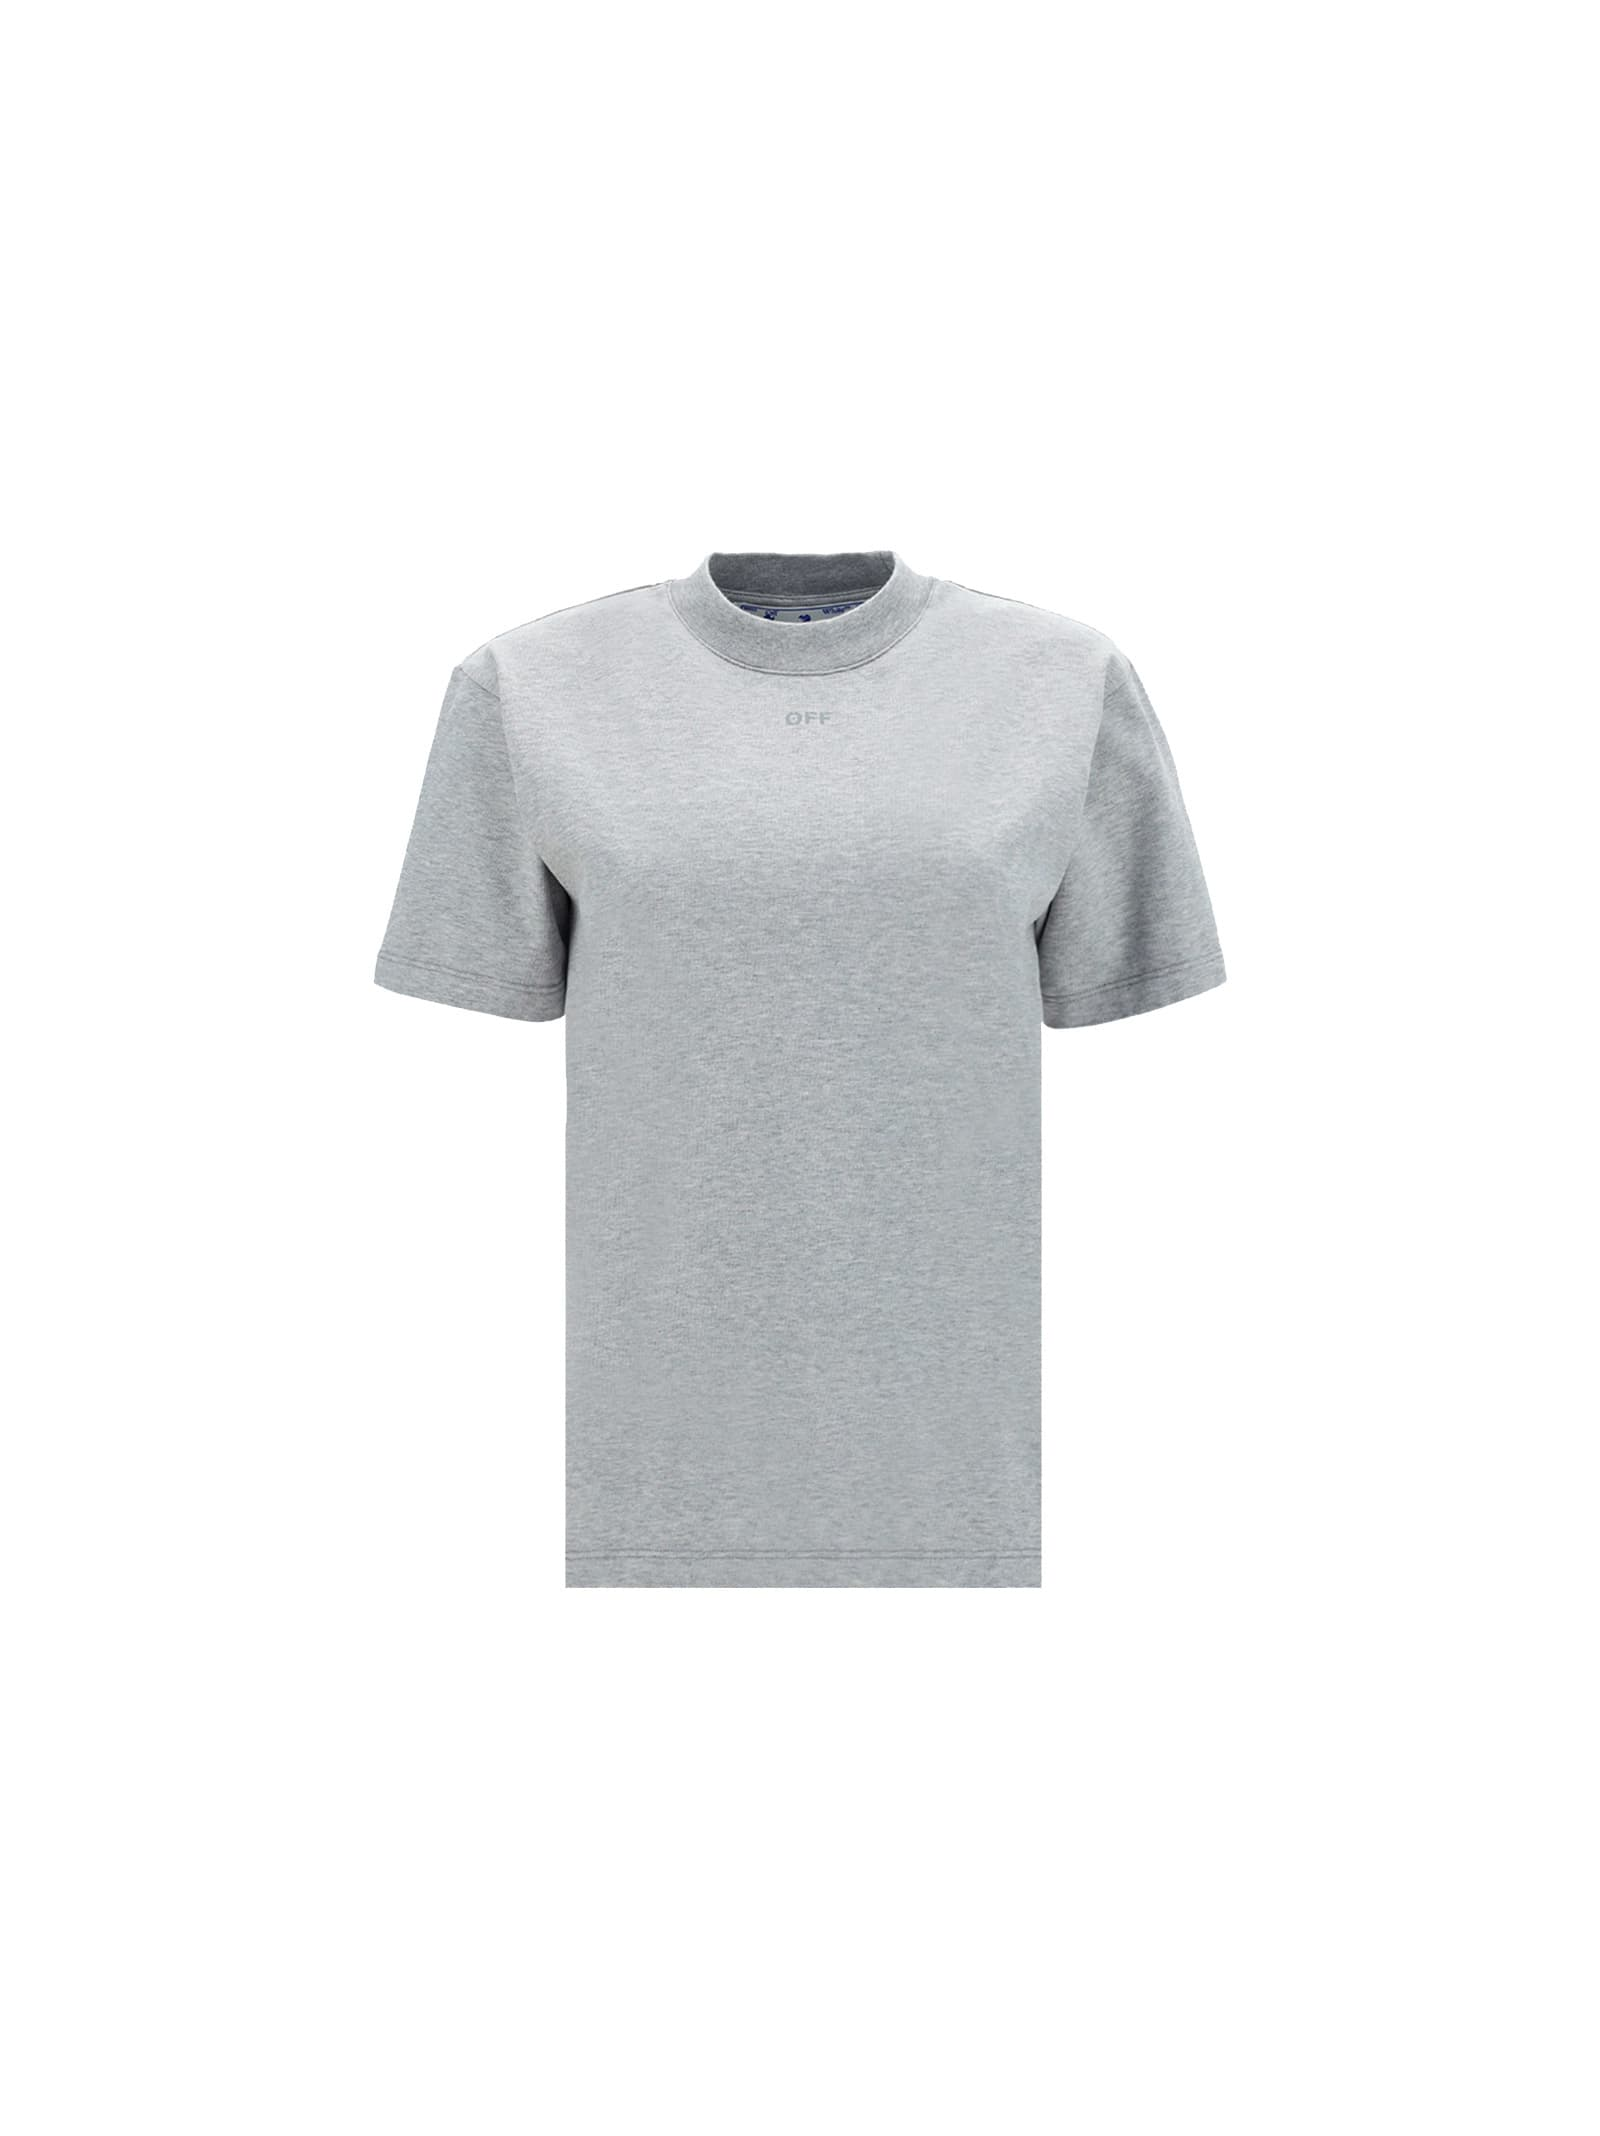 Off-White Cottons OFF WHITE T-SHIRT